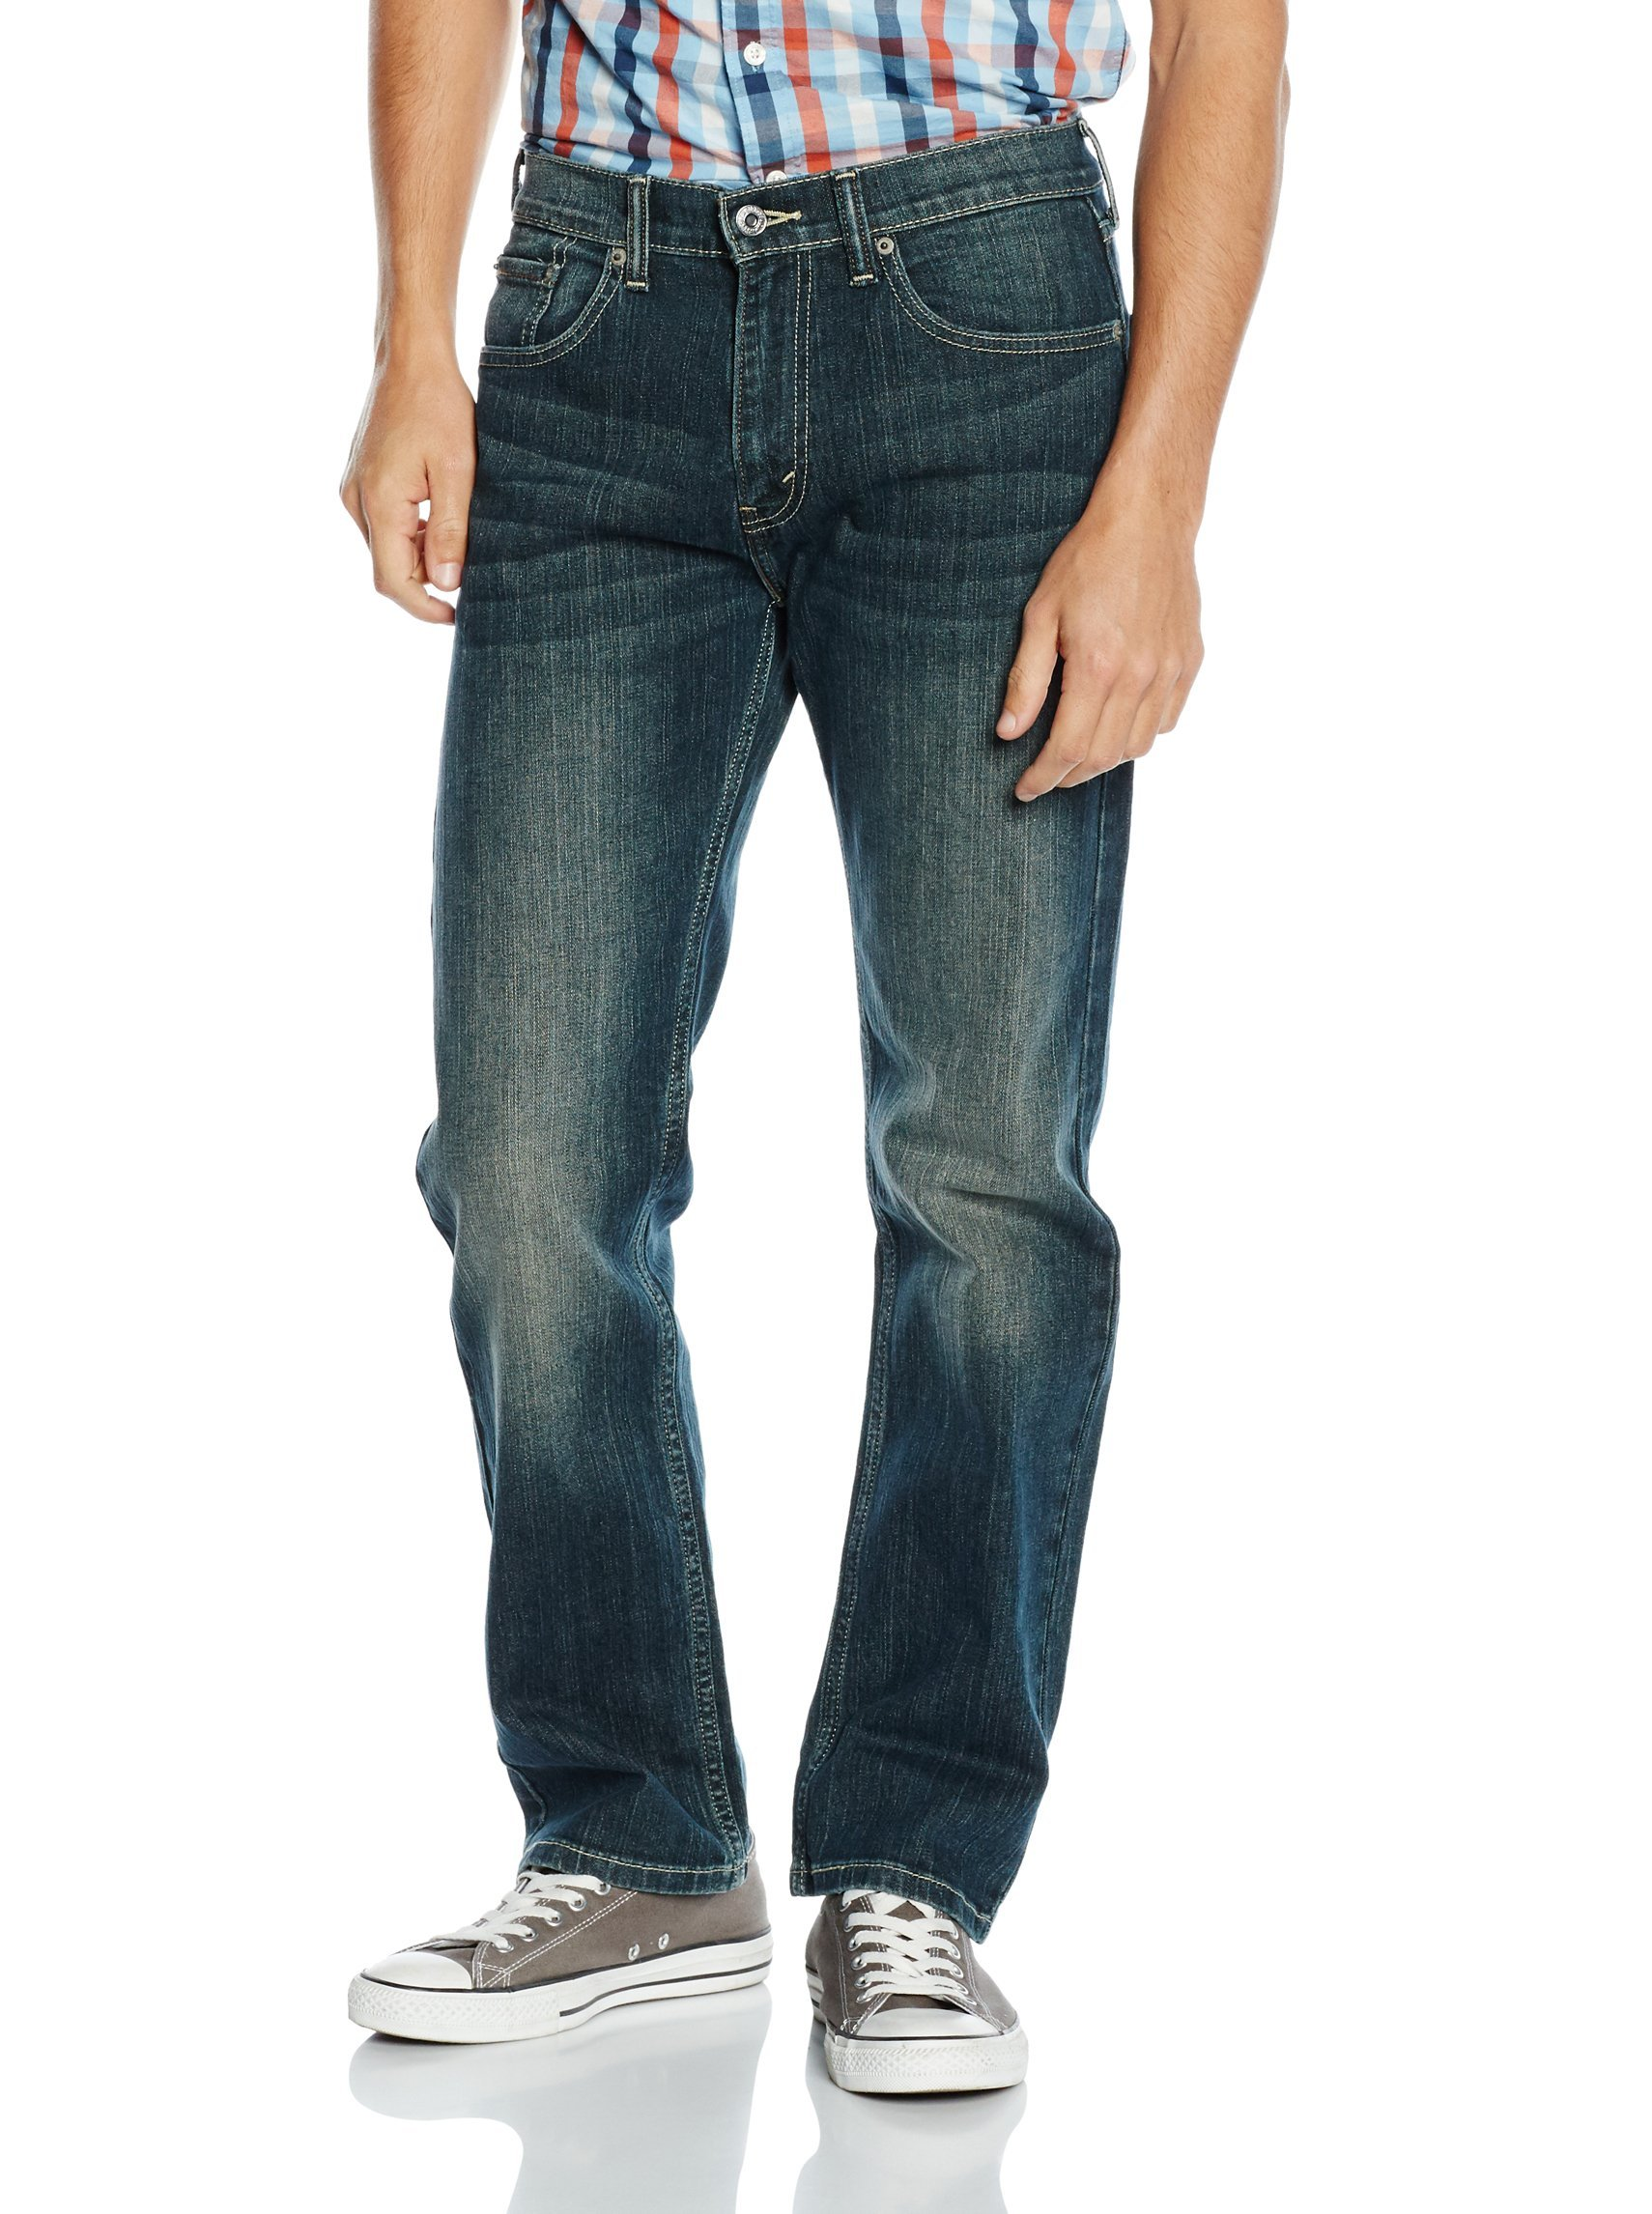 New Levis 505 0277 Zip Fly Regular Fit Stretch Mens Washed Jeans W32 L34